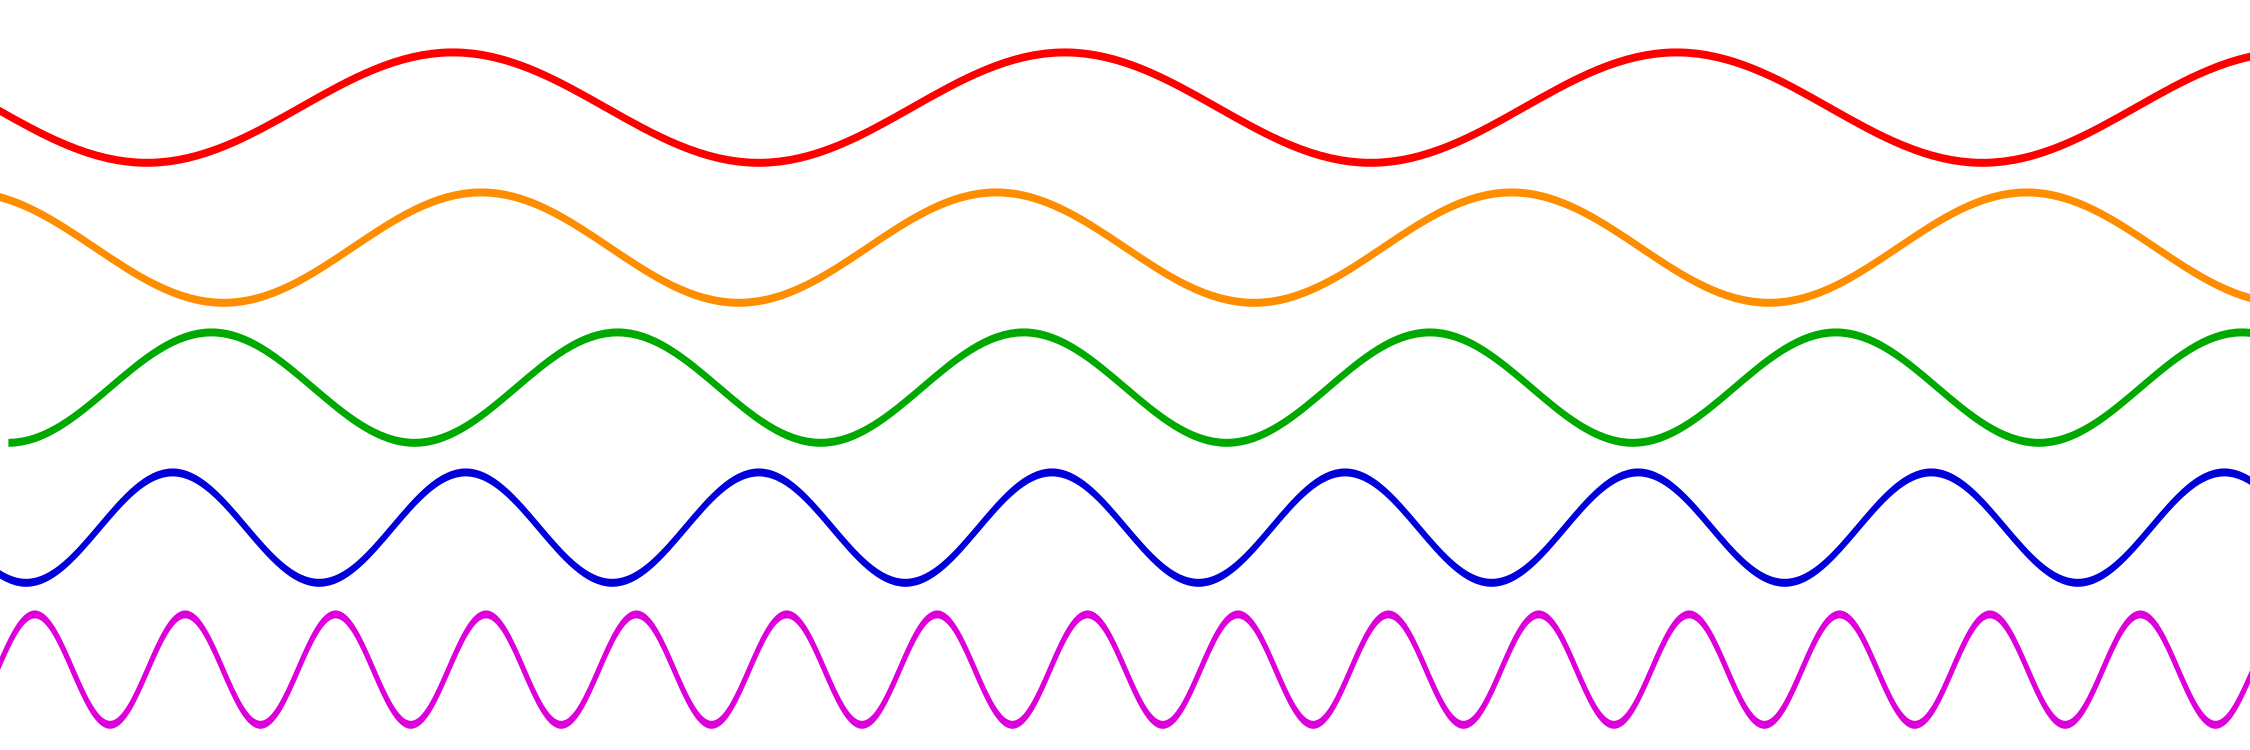 Sine wave png. File waves different frequencies